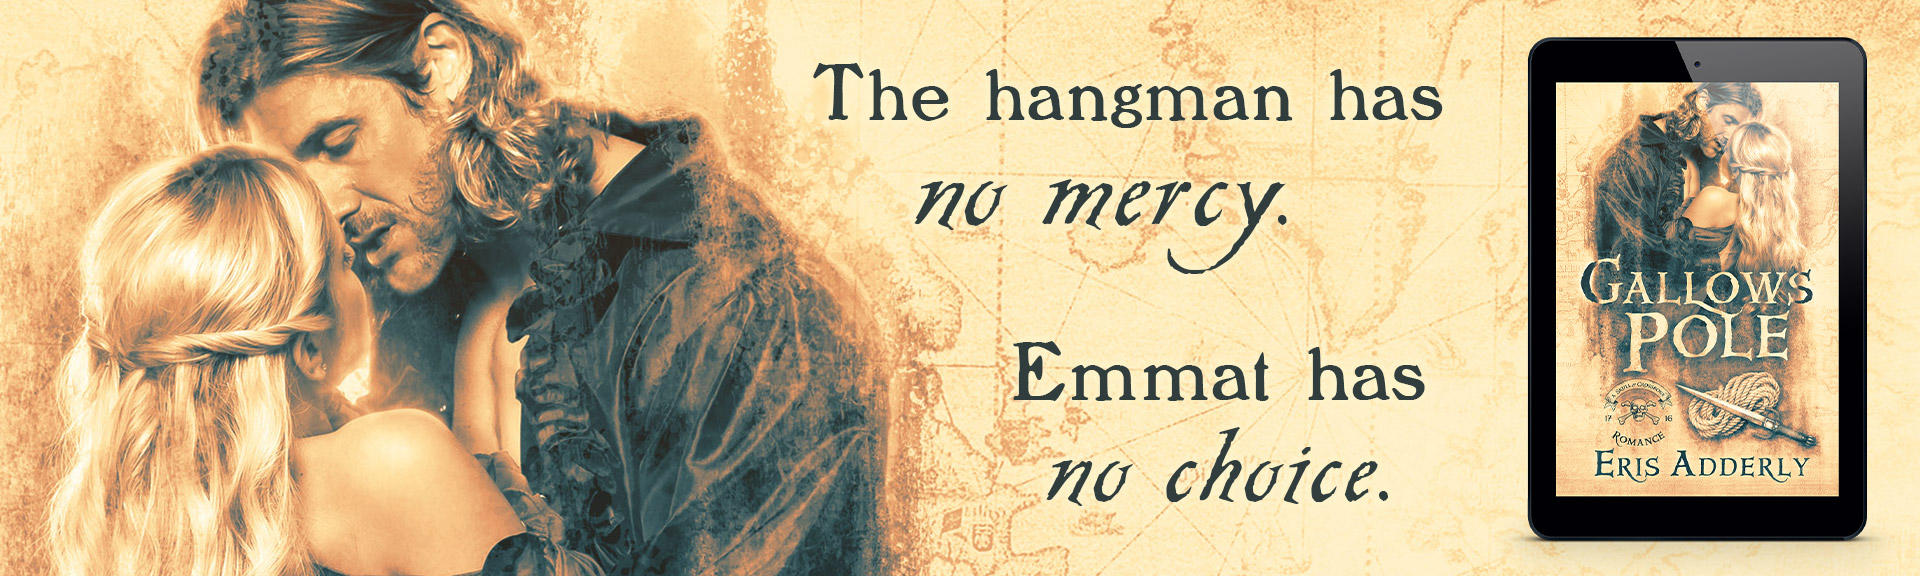 The hangman has no mercy. Emmat has no choice.